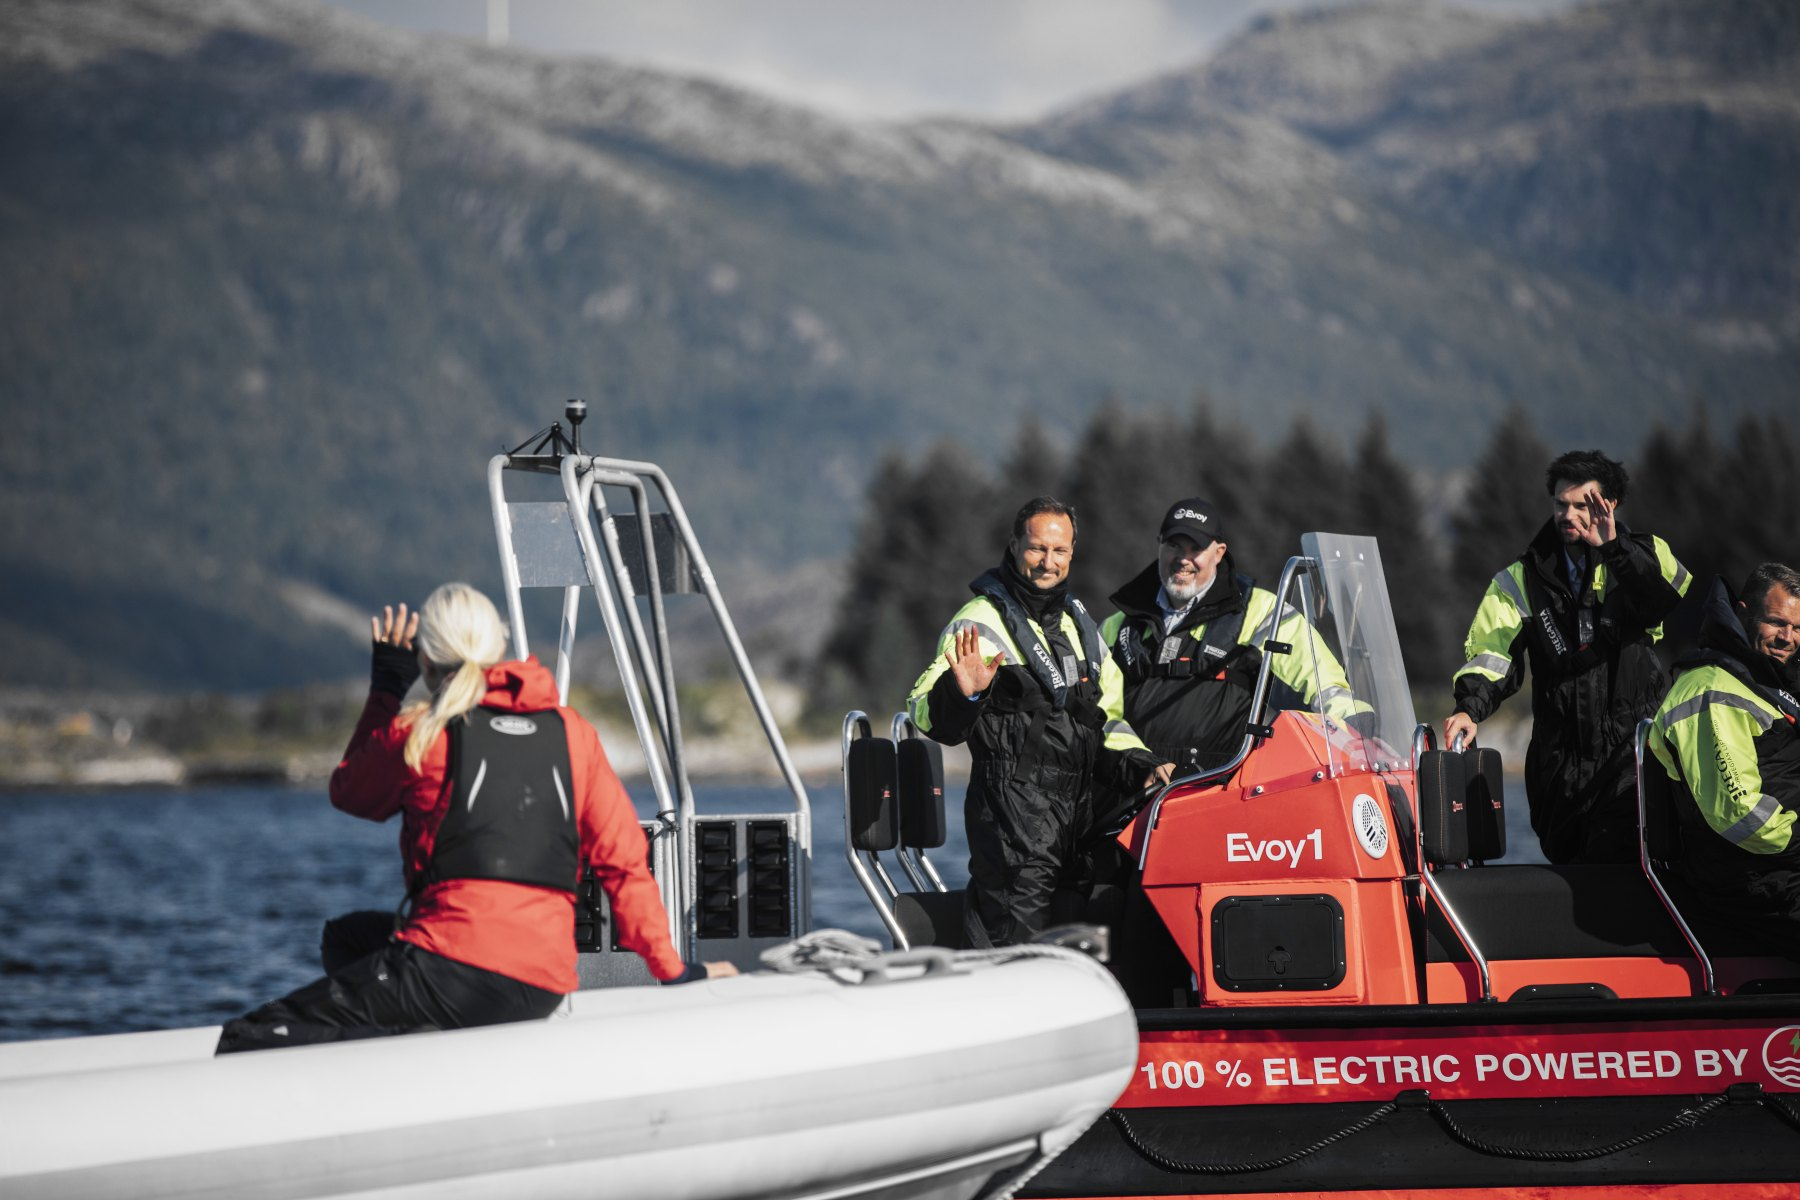 Image of Crown Prince and Princess of Norway in boats